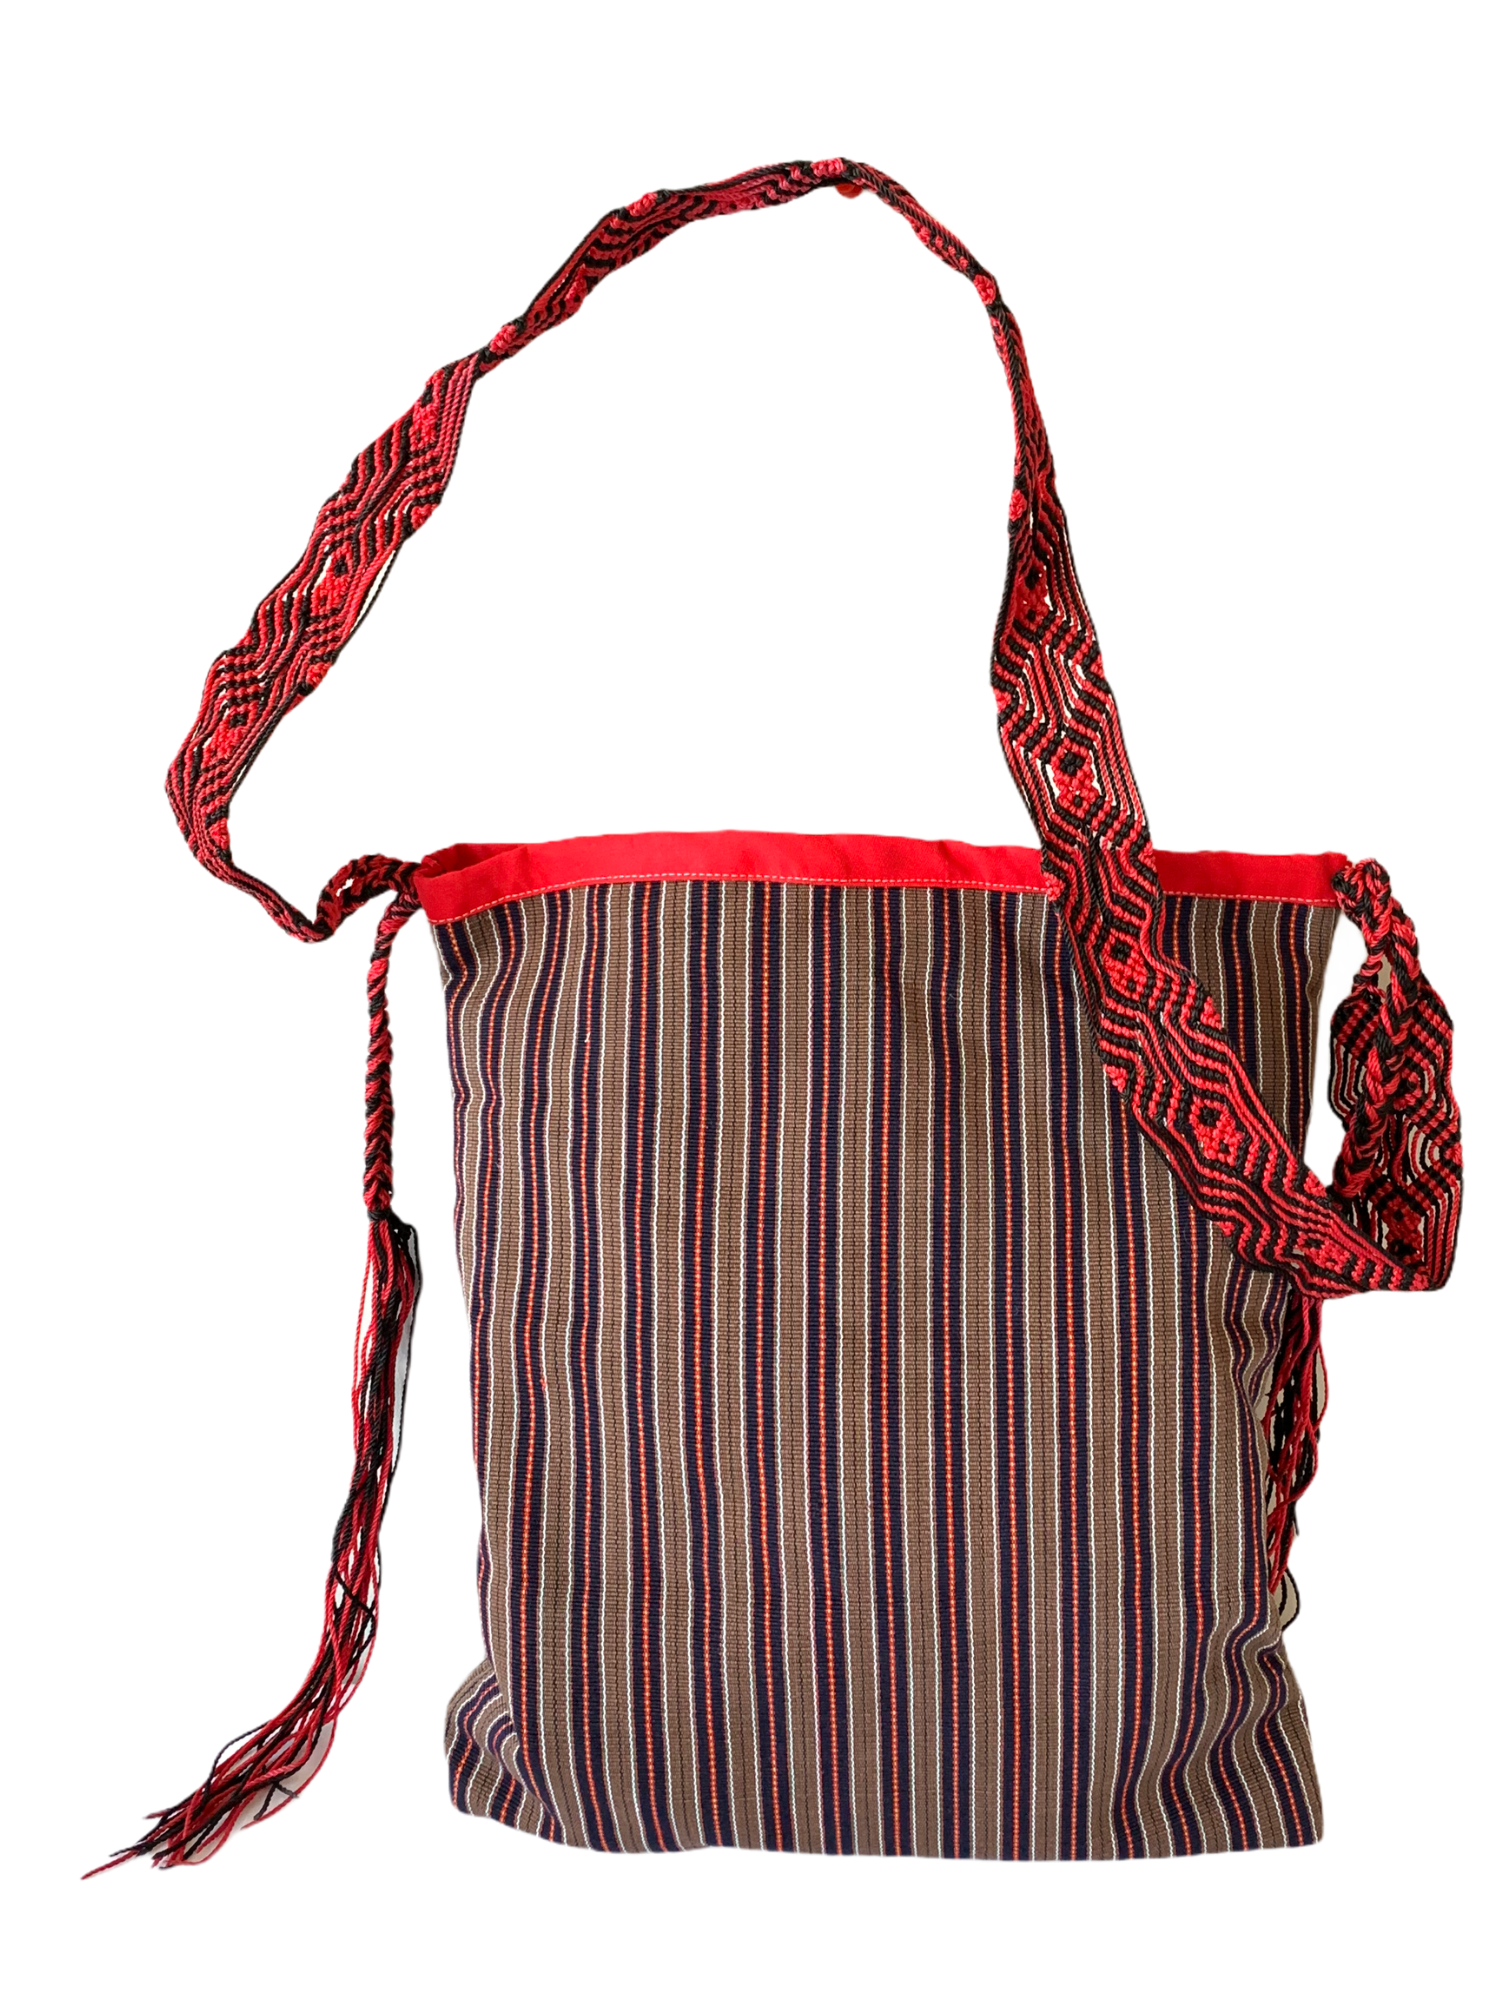 Cordillera tote bag, handwoven from Philippines